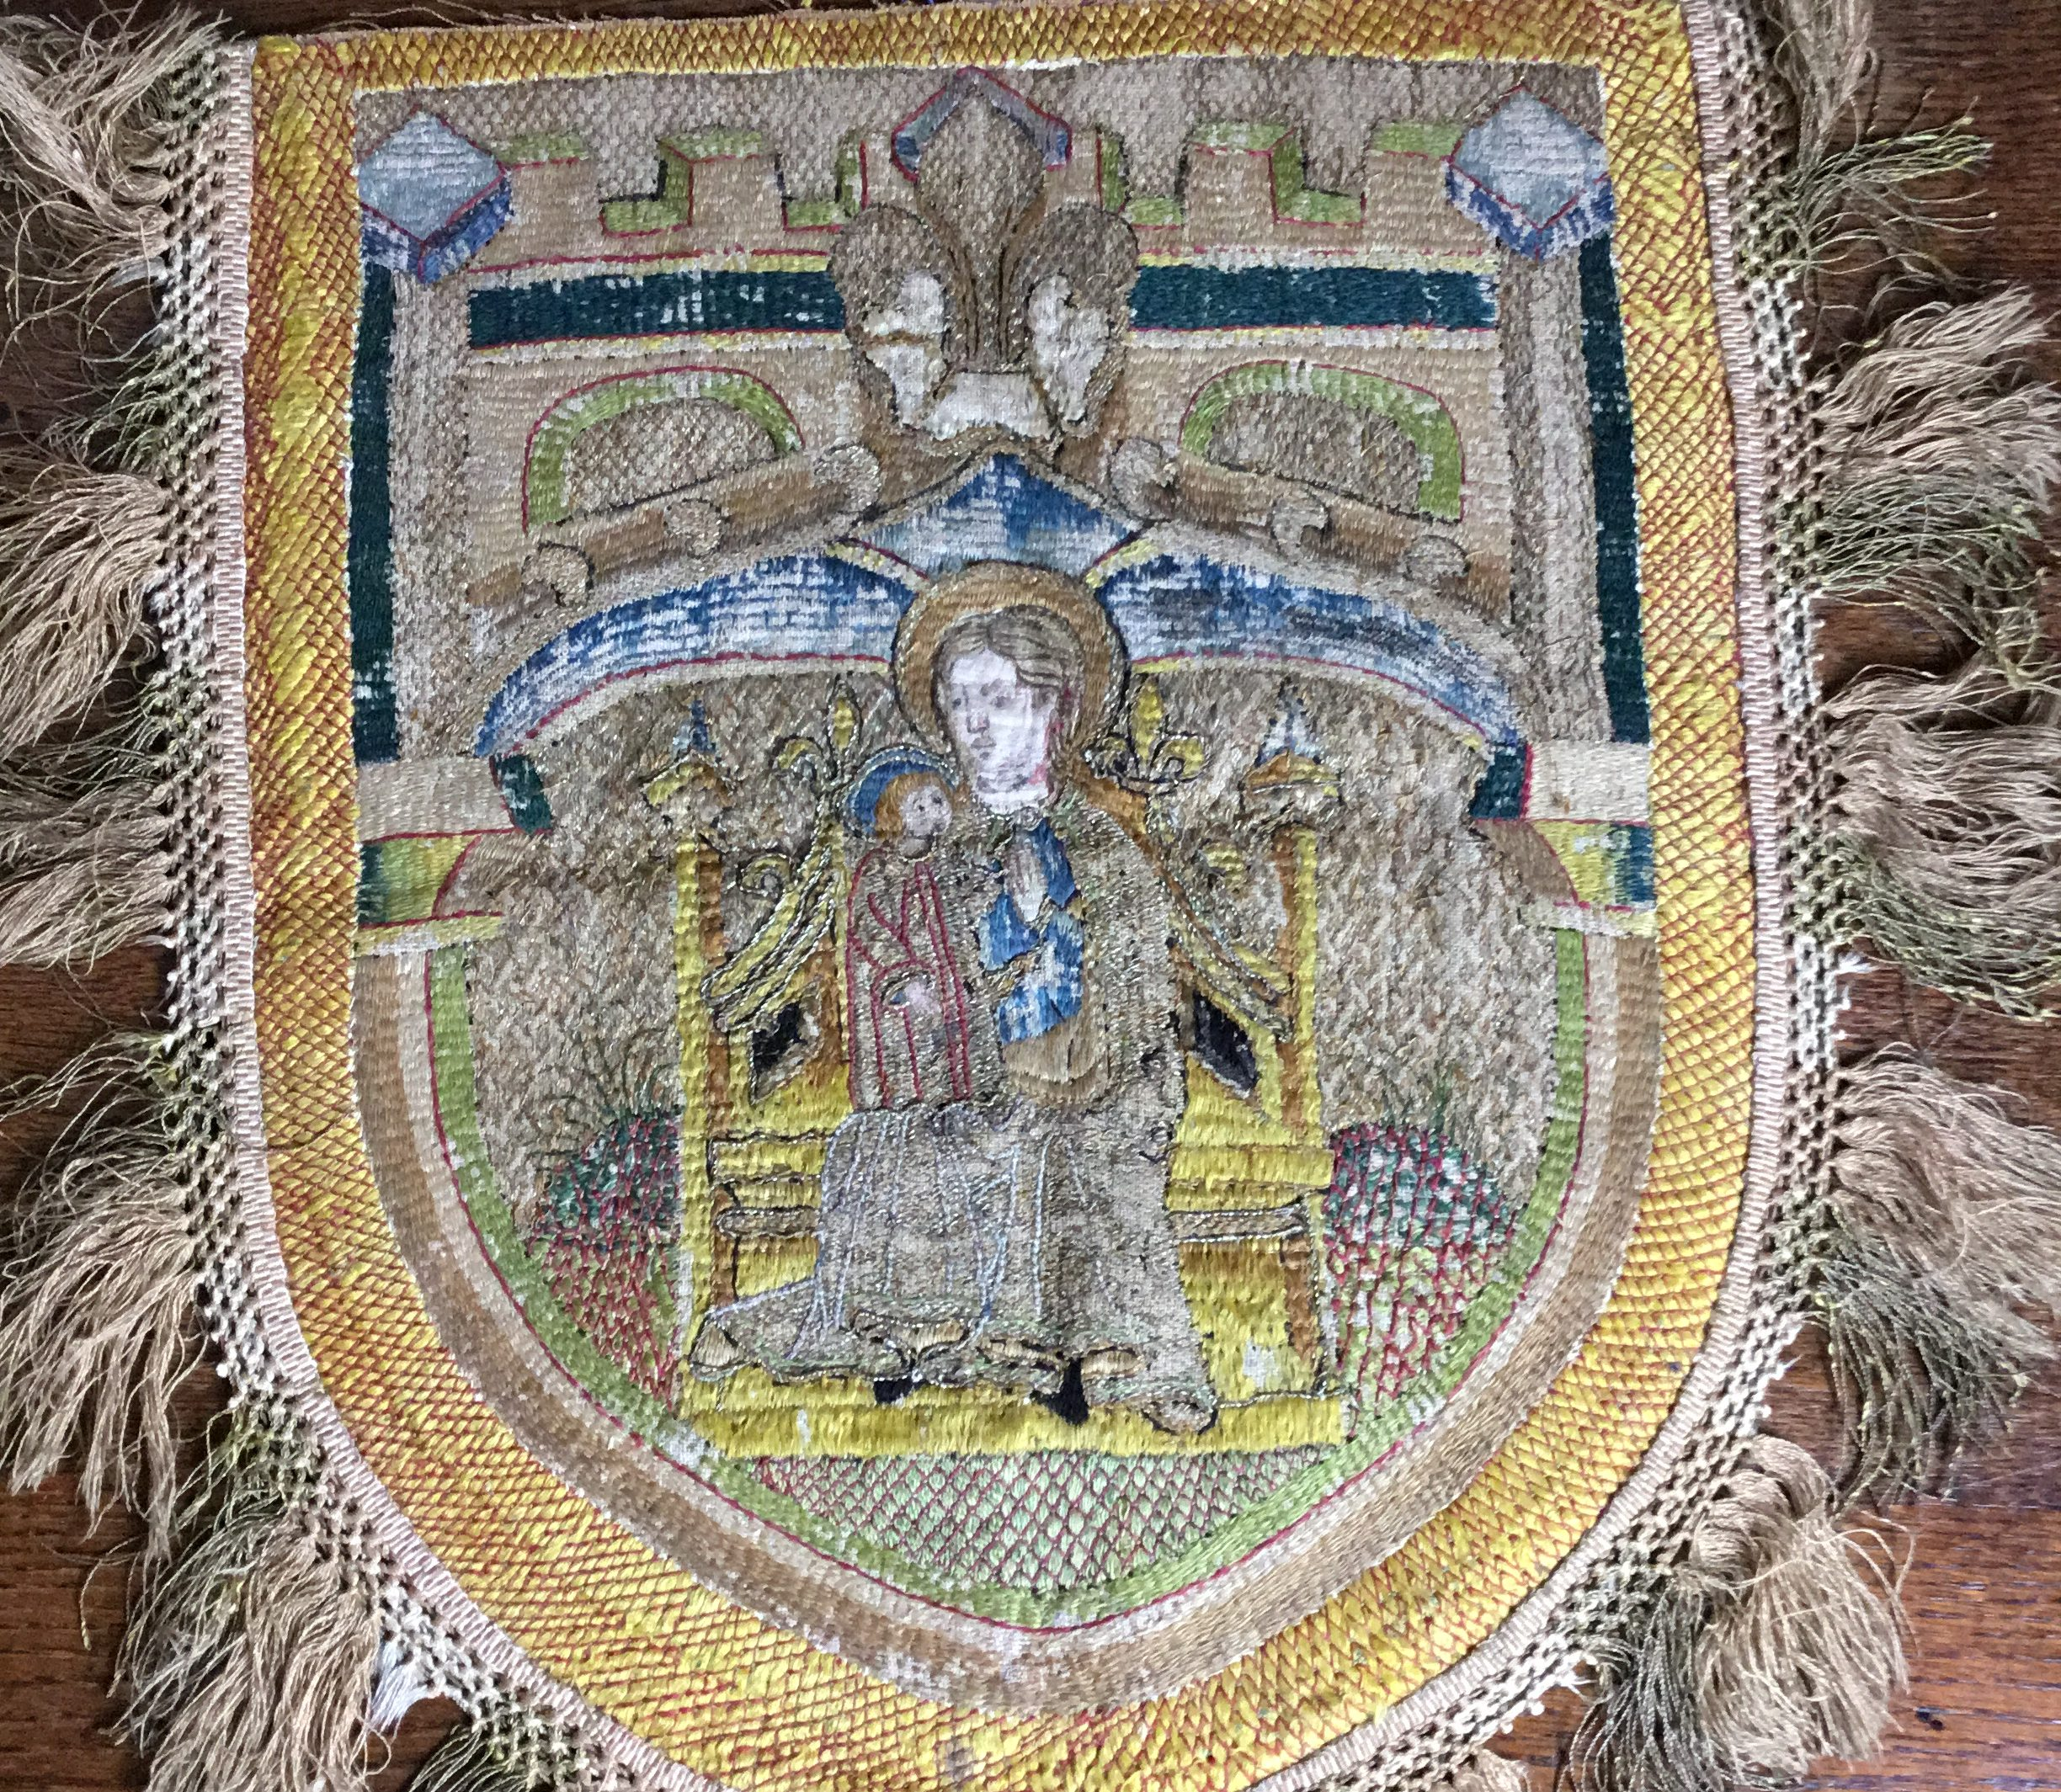 Embroidered image of Mary and Jesus in crest